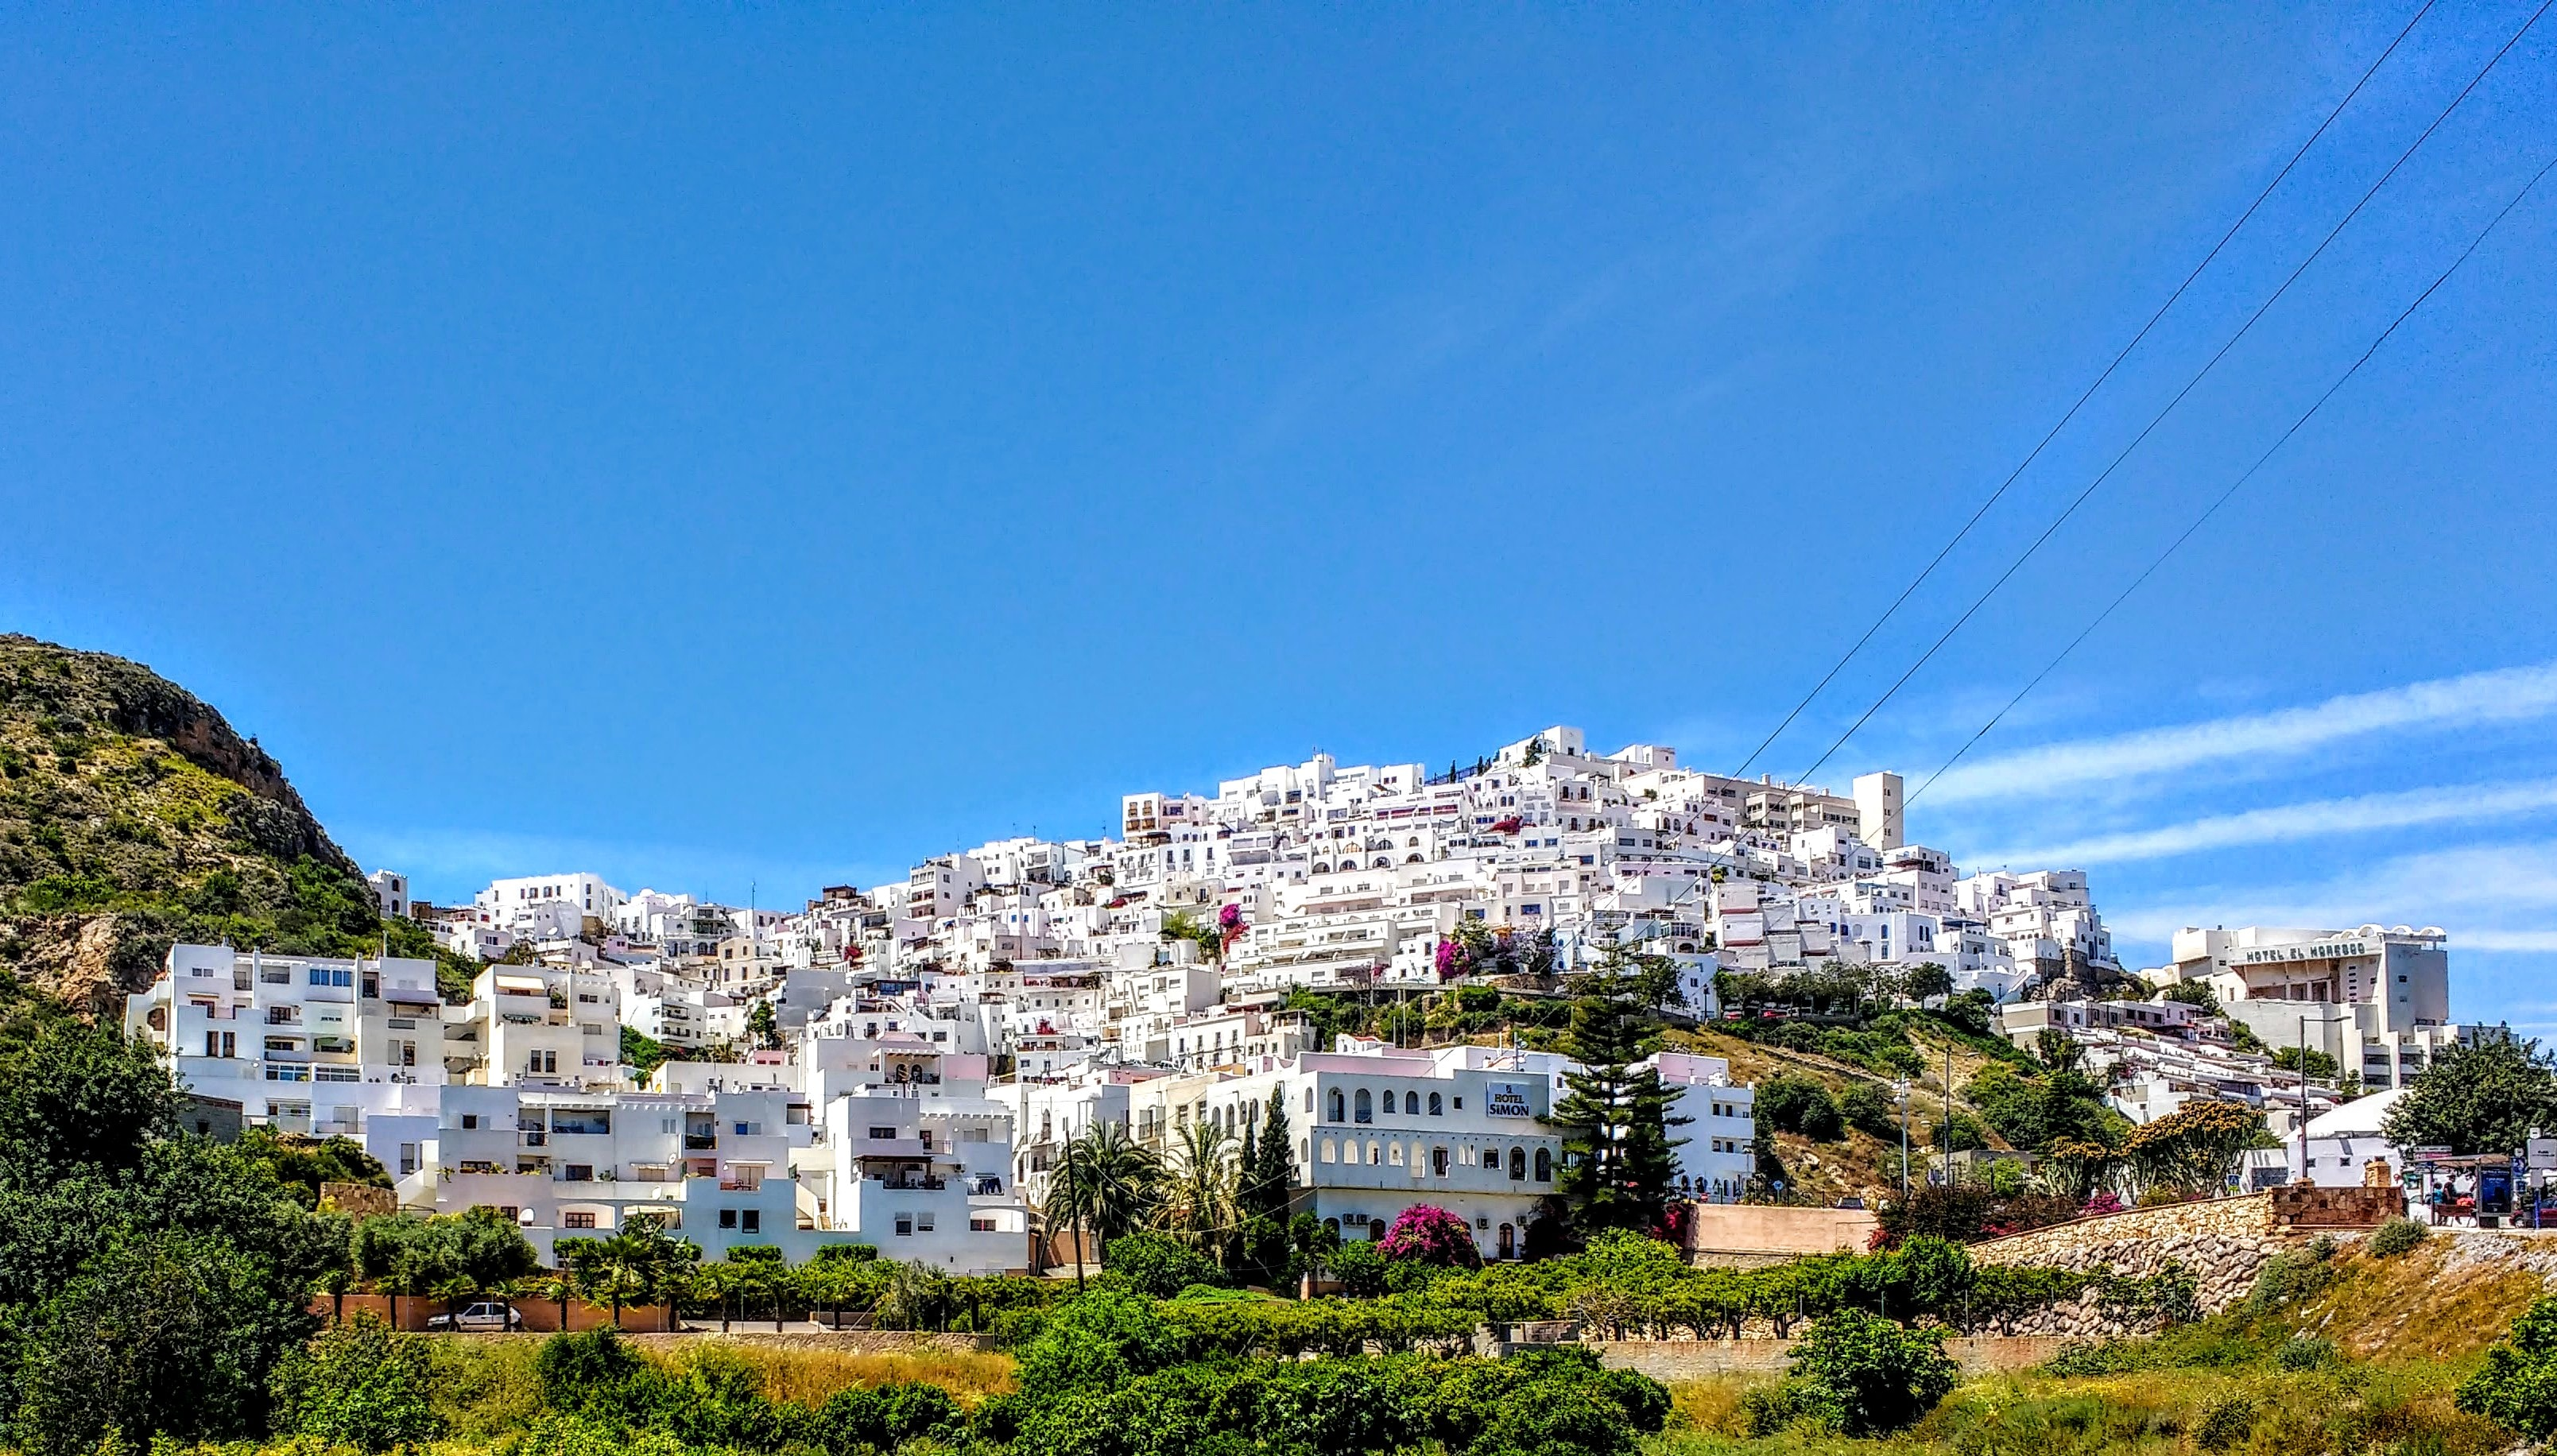 a view of the white town of Mojacer